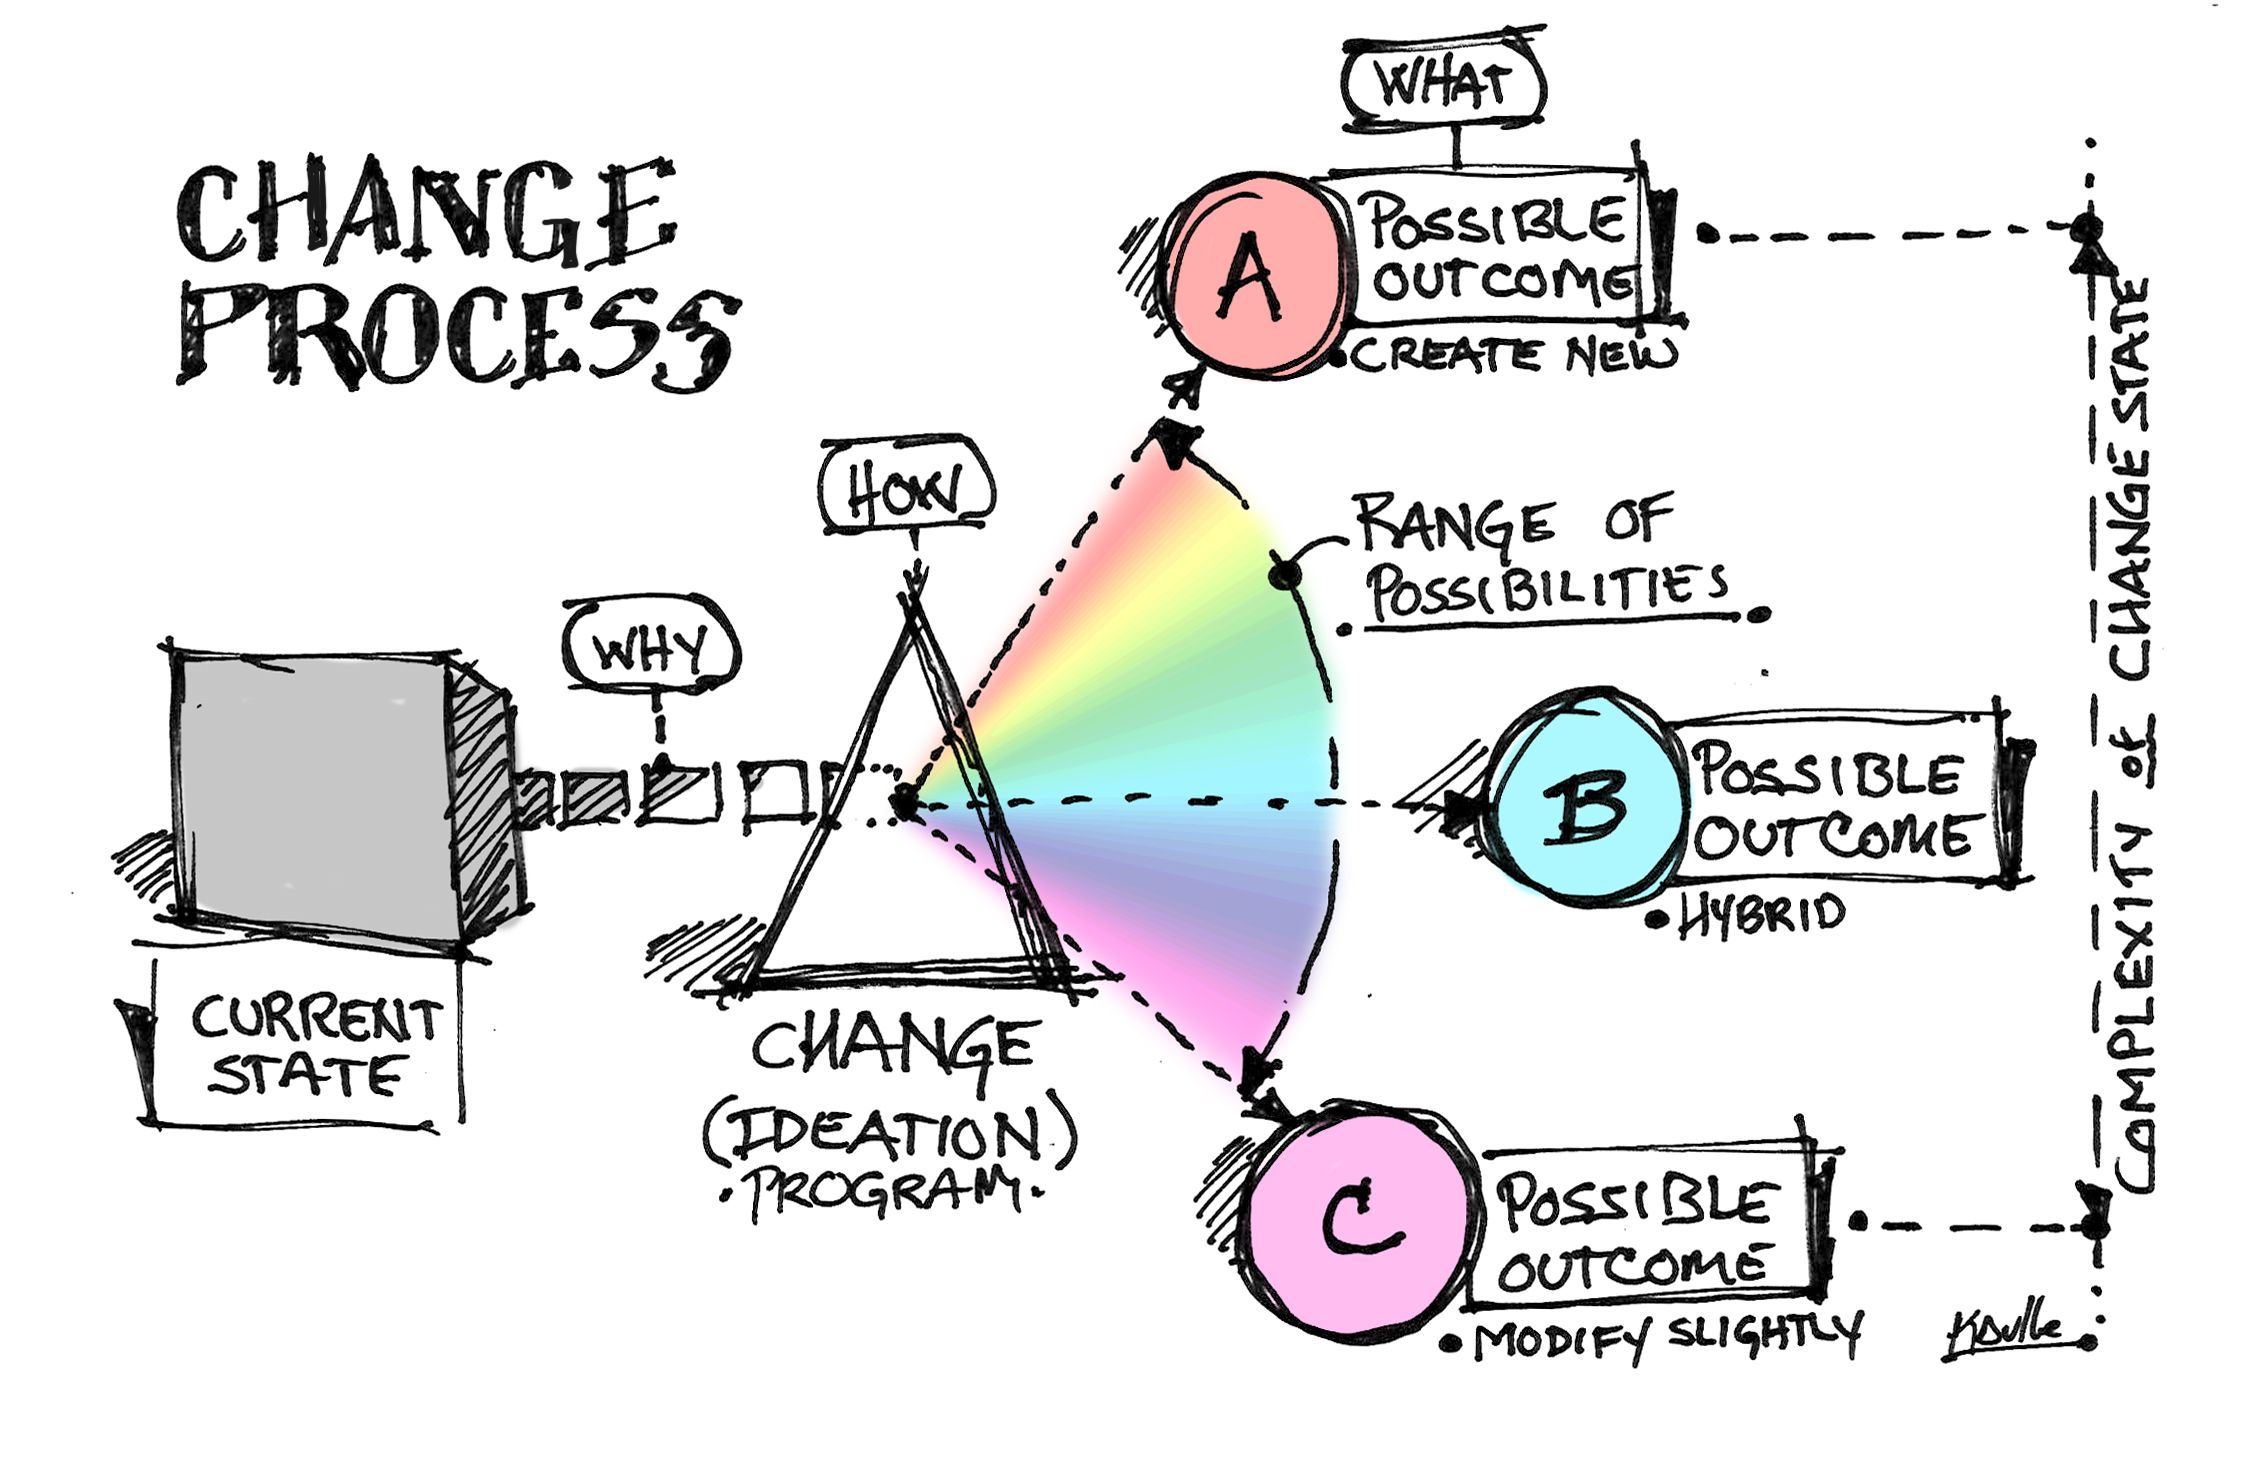 Change Ideation Diagram For Moving From Present State To